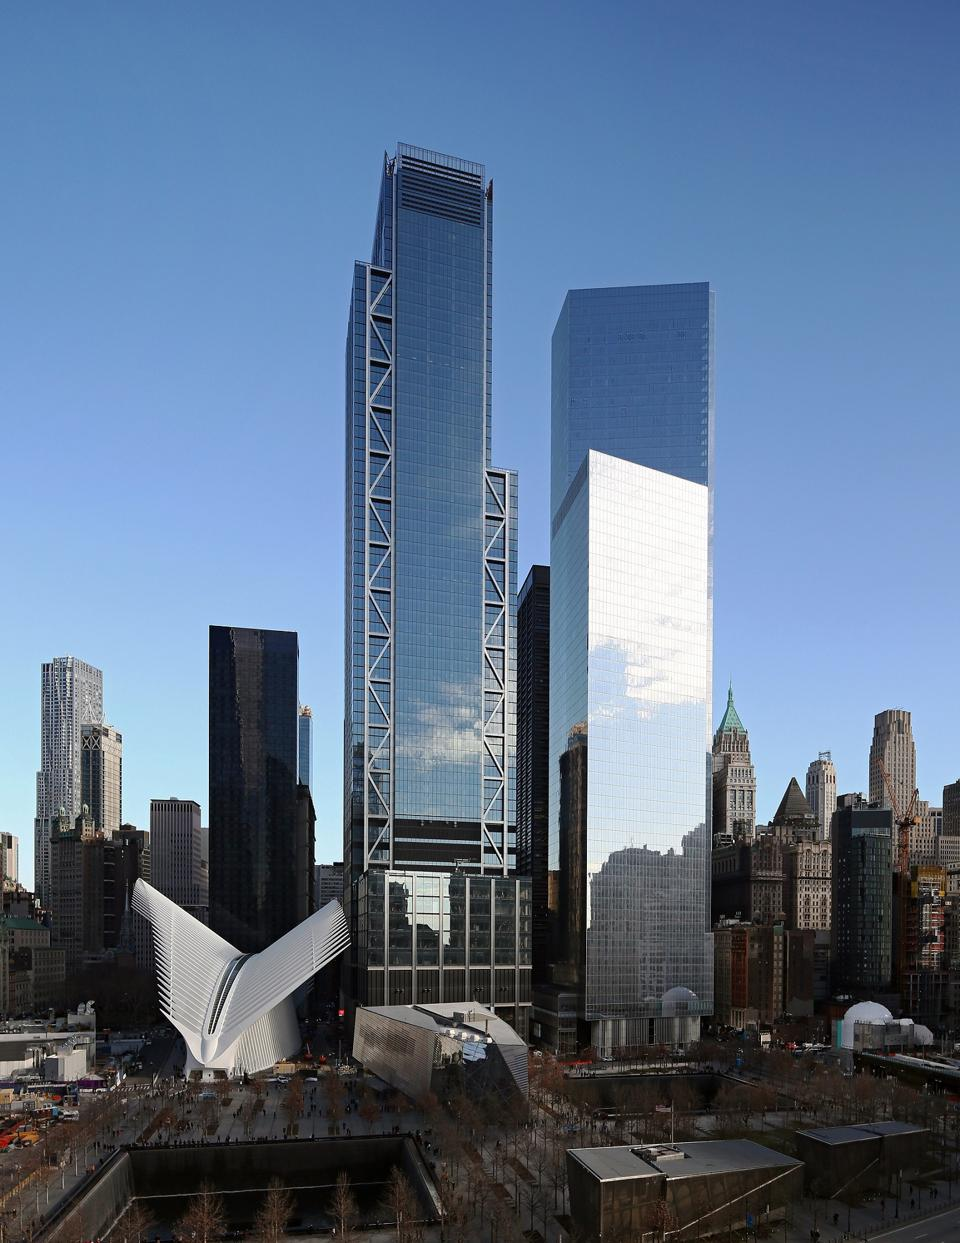 3WTC, center, was designed by Rogers Stirk Harbour + Partners.